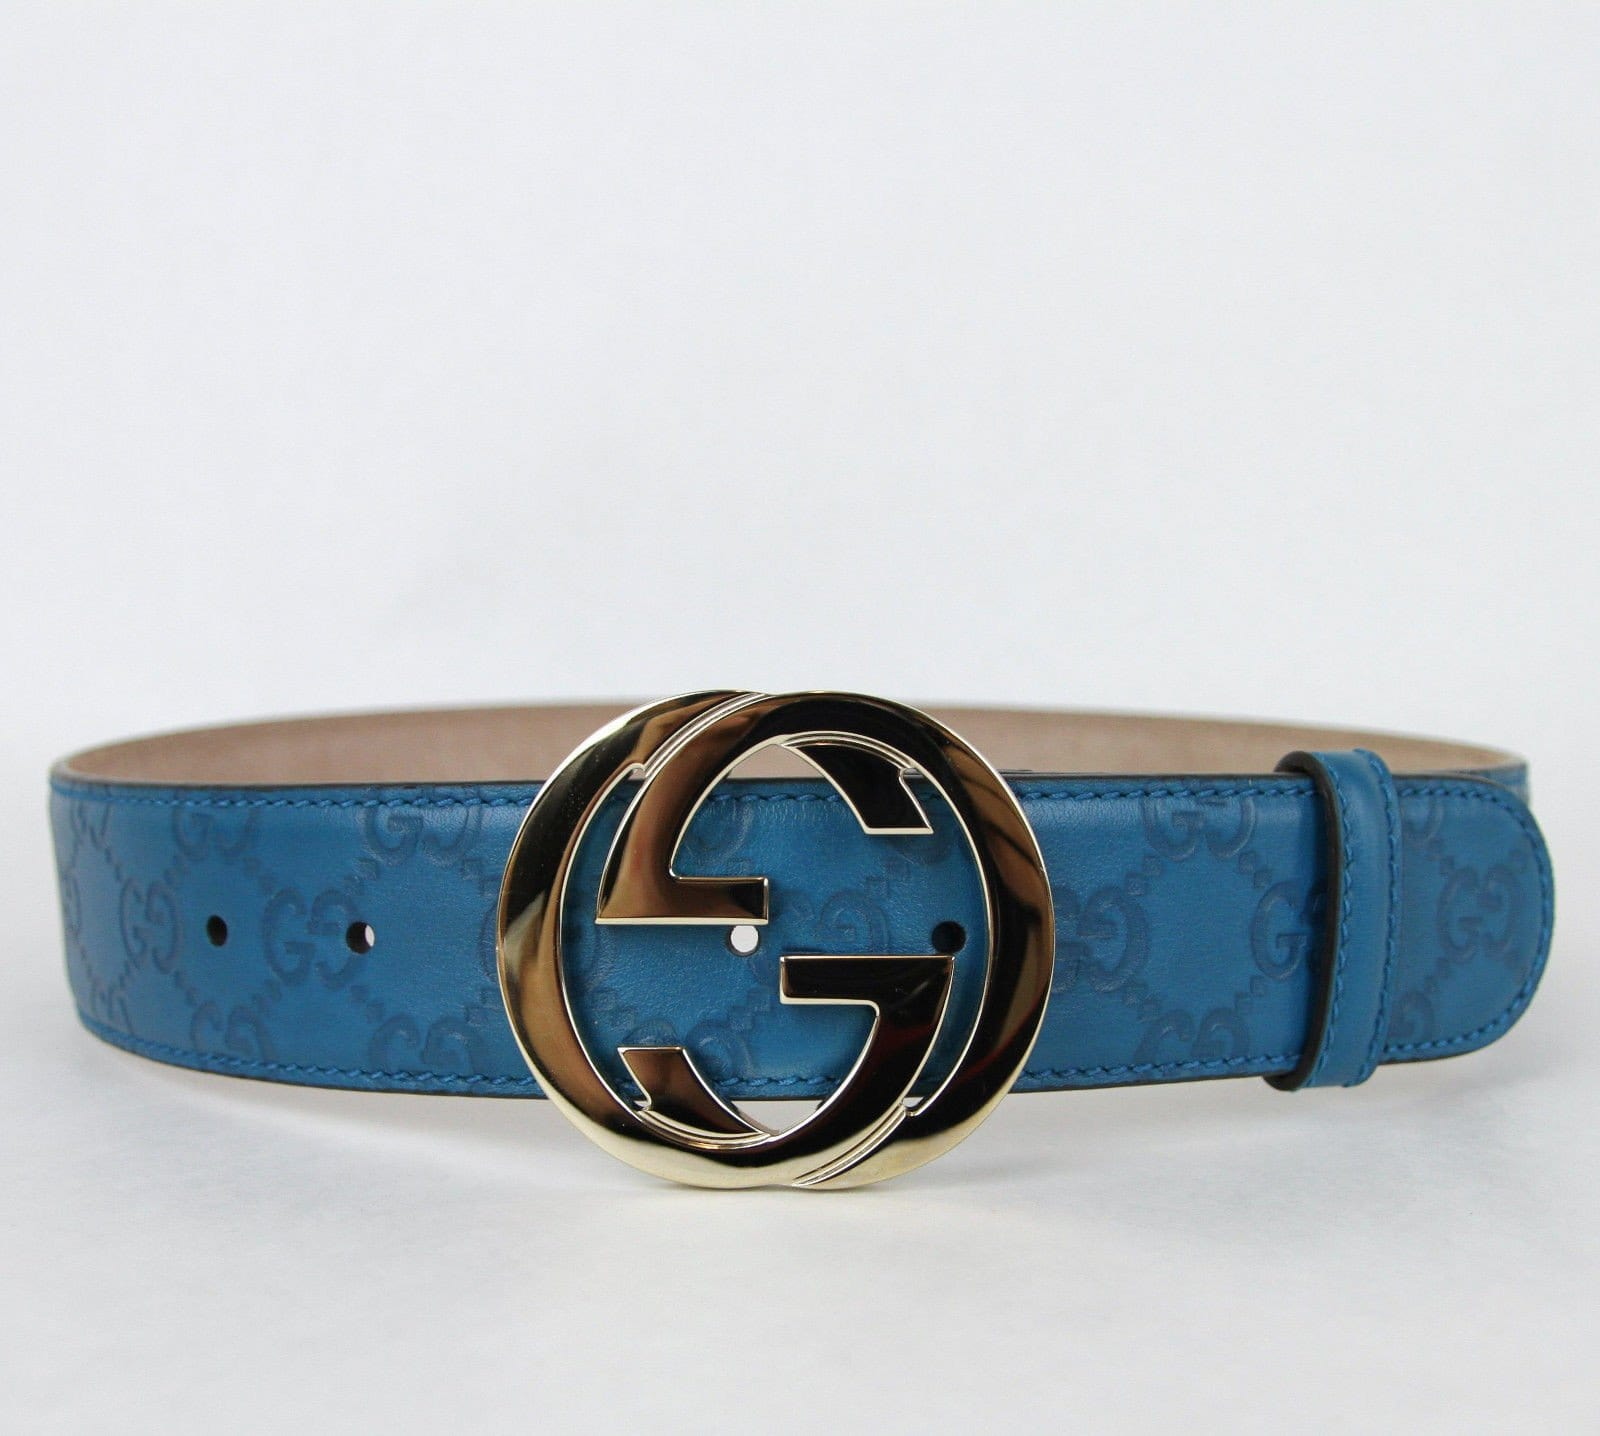 dc6d6b11f28 Gucci Teal Guccissima Leather Interlocking G Buckle Belt 114876 4618 (